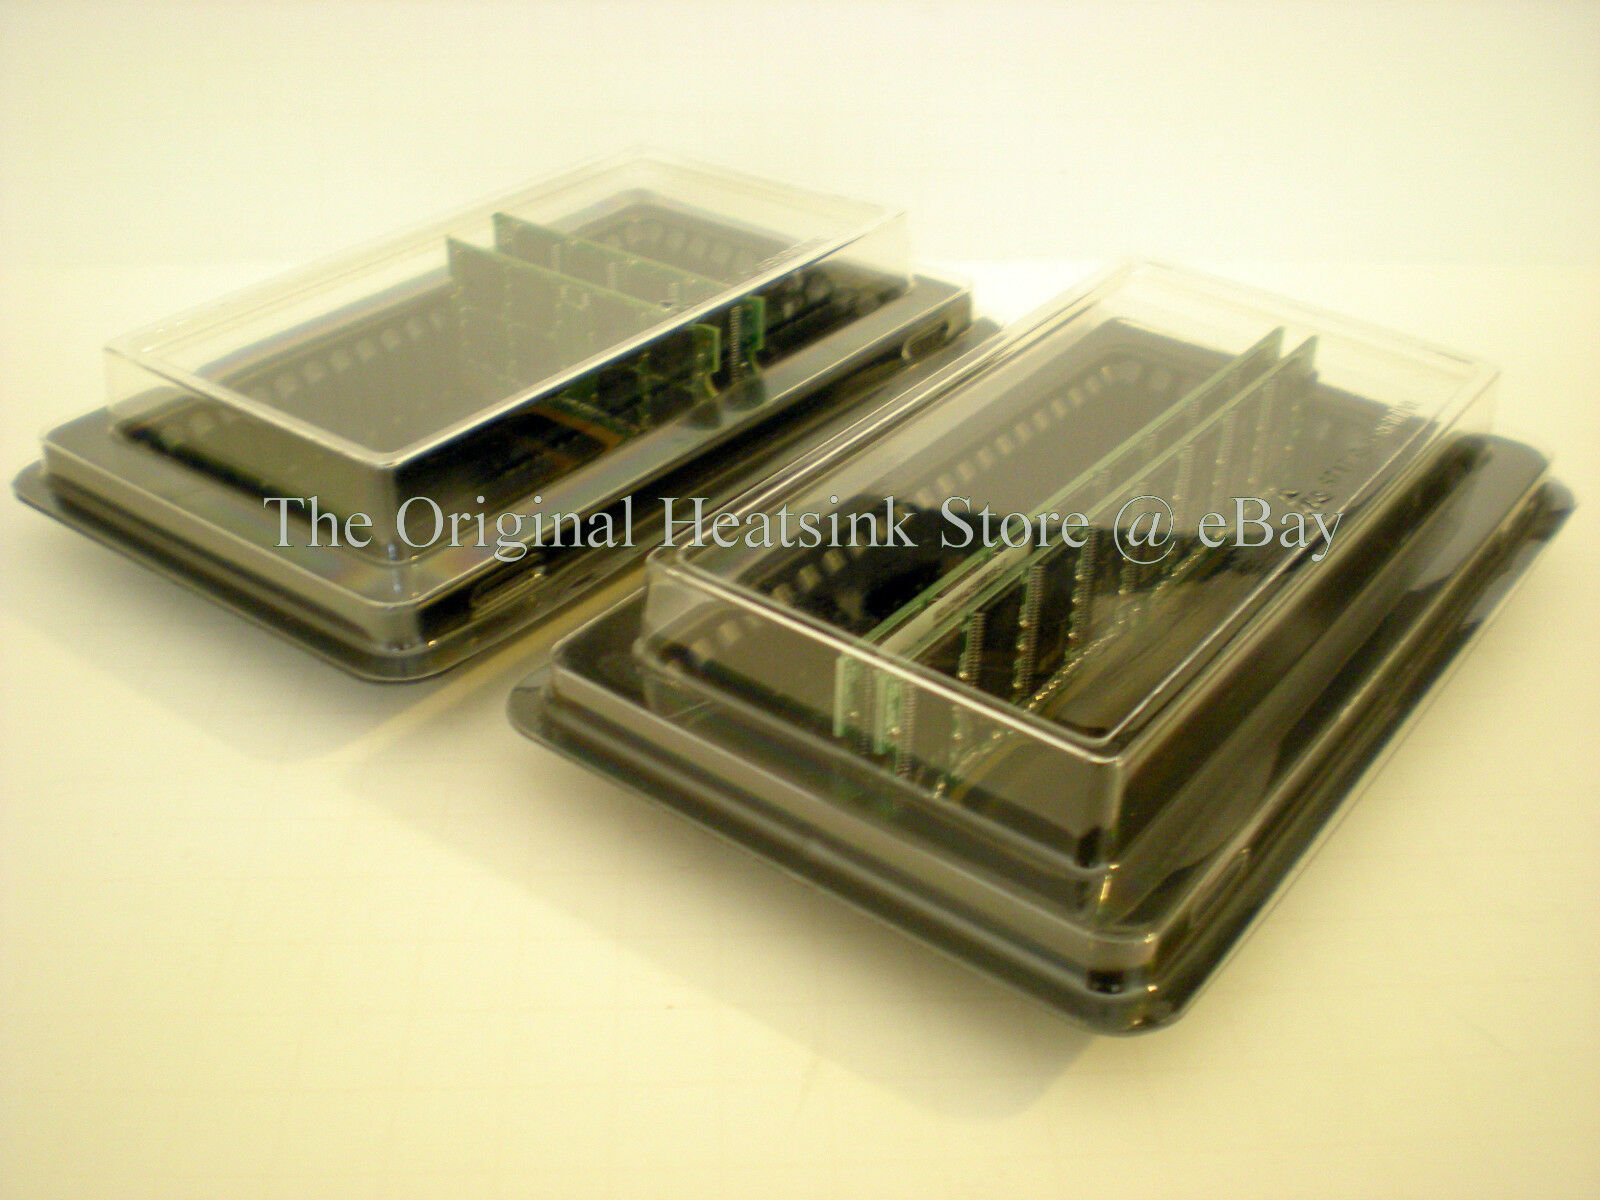 4 - Ddr Memory Tray Case For Pc Or Laptop Fits 40 Long Dimm Or 80 Short Dimm